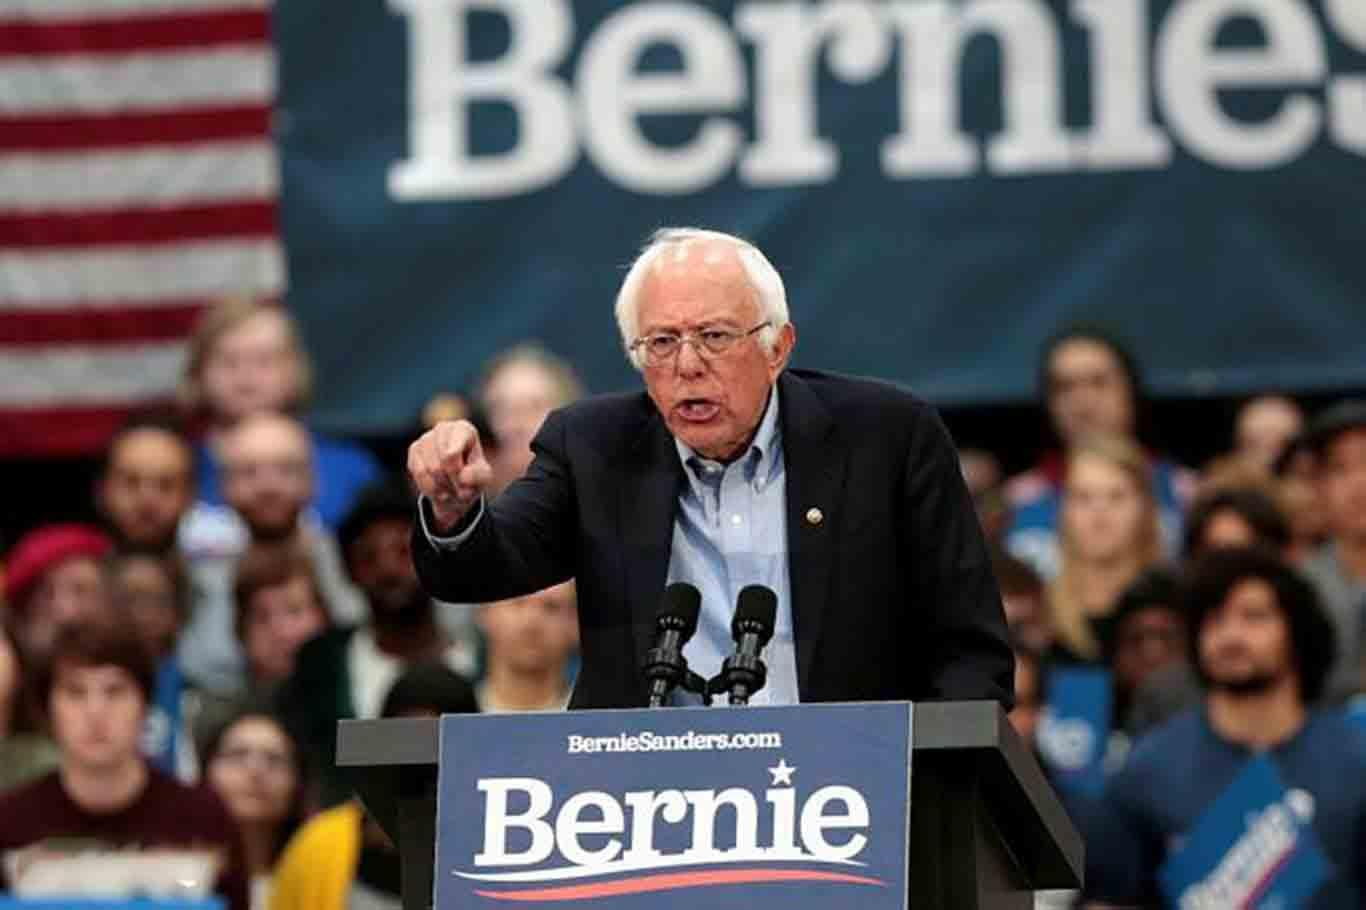 Bernie Sanders drop out of the presidential race in the US